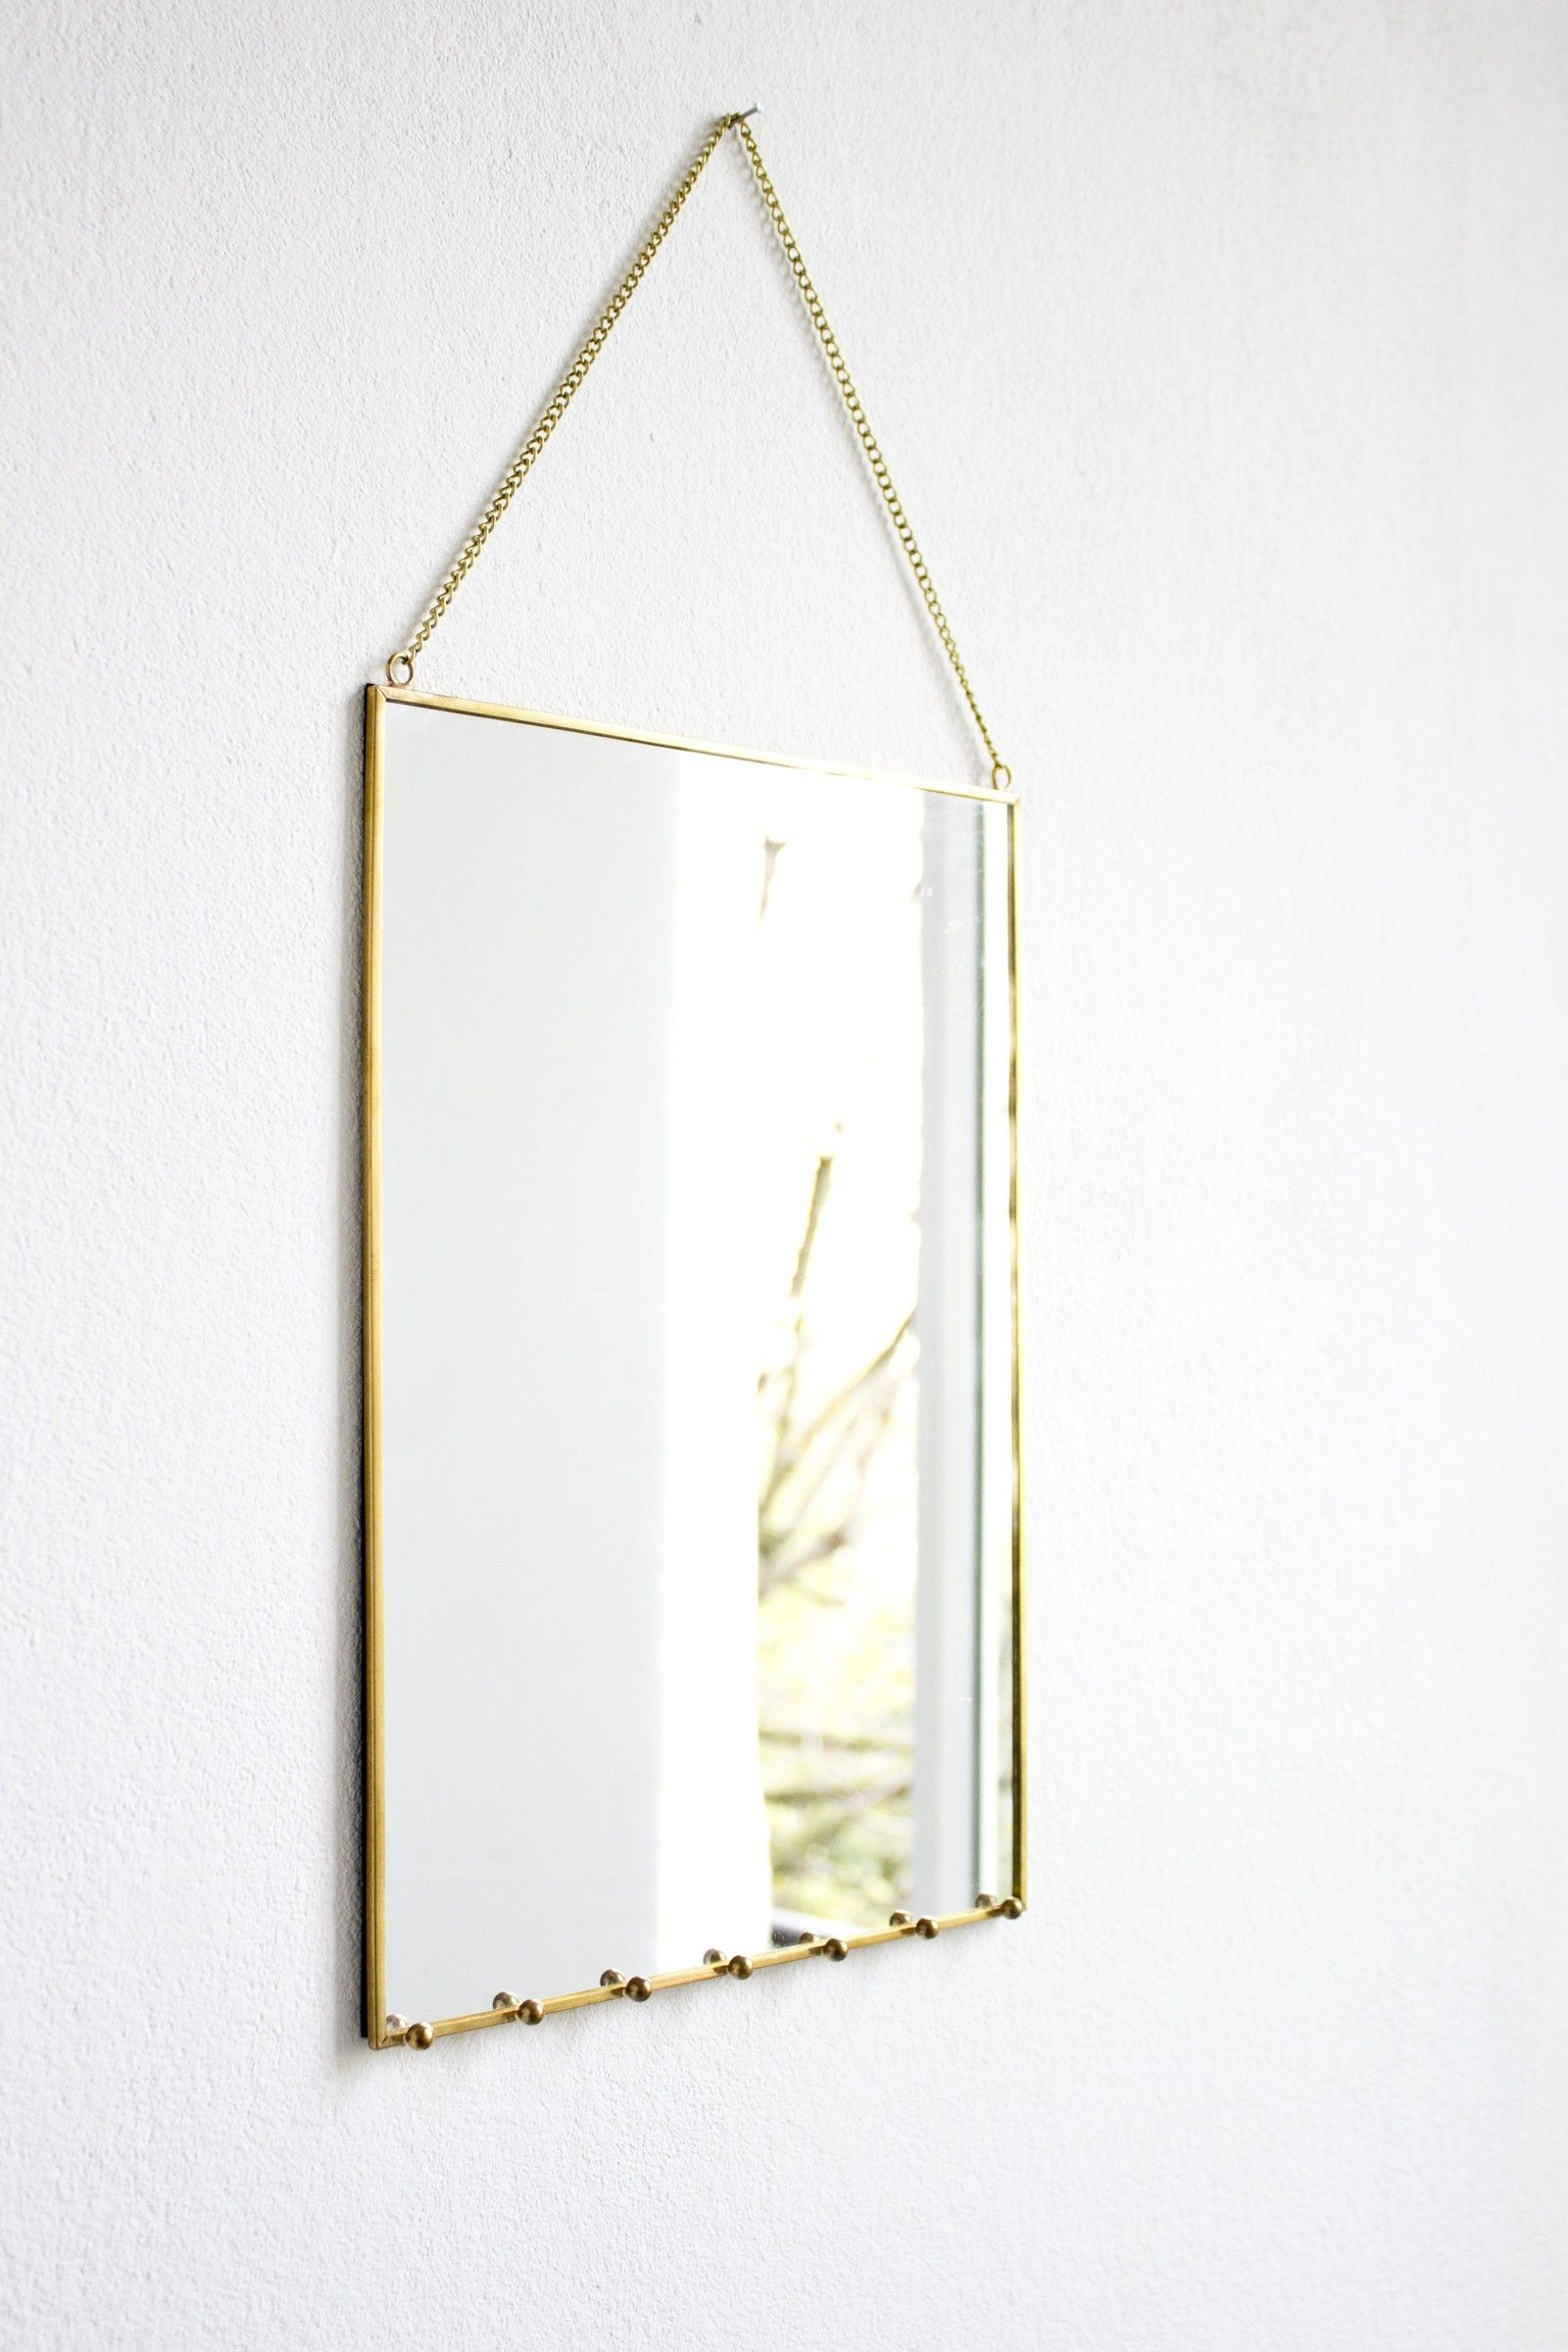 Brass Frame Mirror With Jewellery Hooks Mirrors Home Accessories Mirror Hanging Mirror Home Accessories